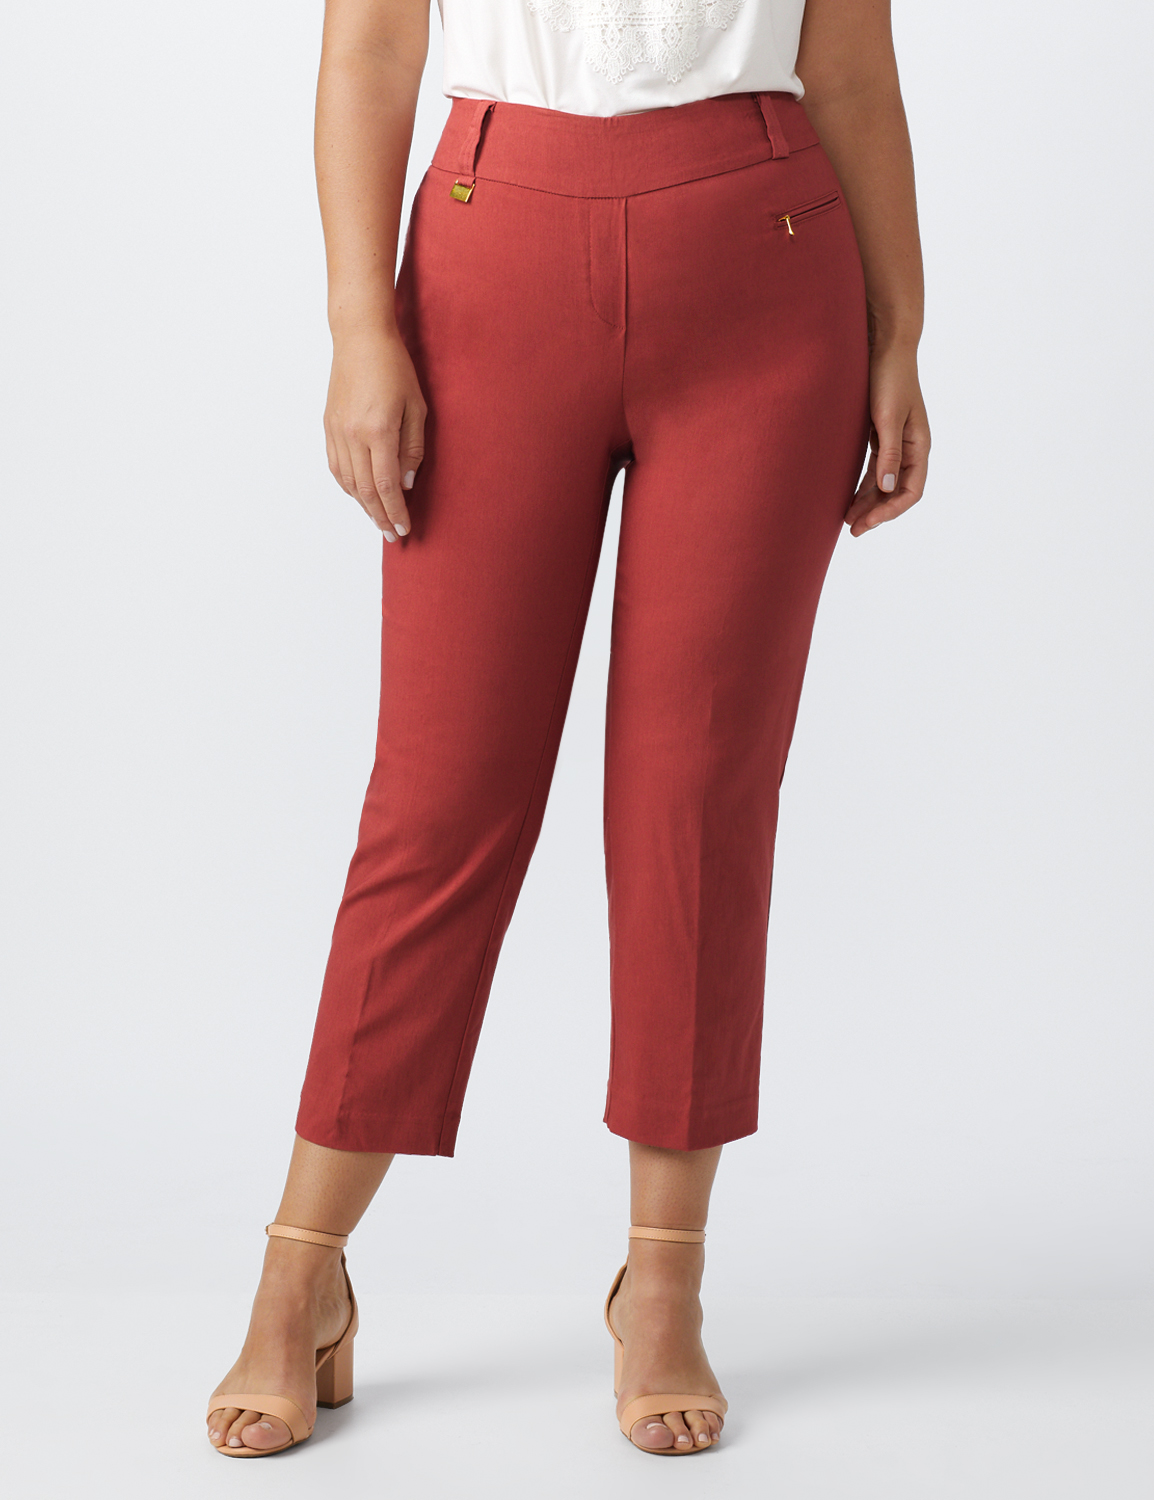 Plus- Pull On Ankle Length Pants With Zipper And Metal Tab -Terra Rose - Front